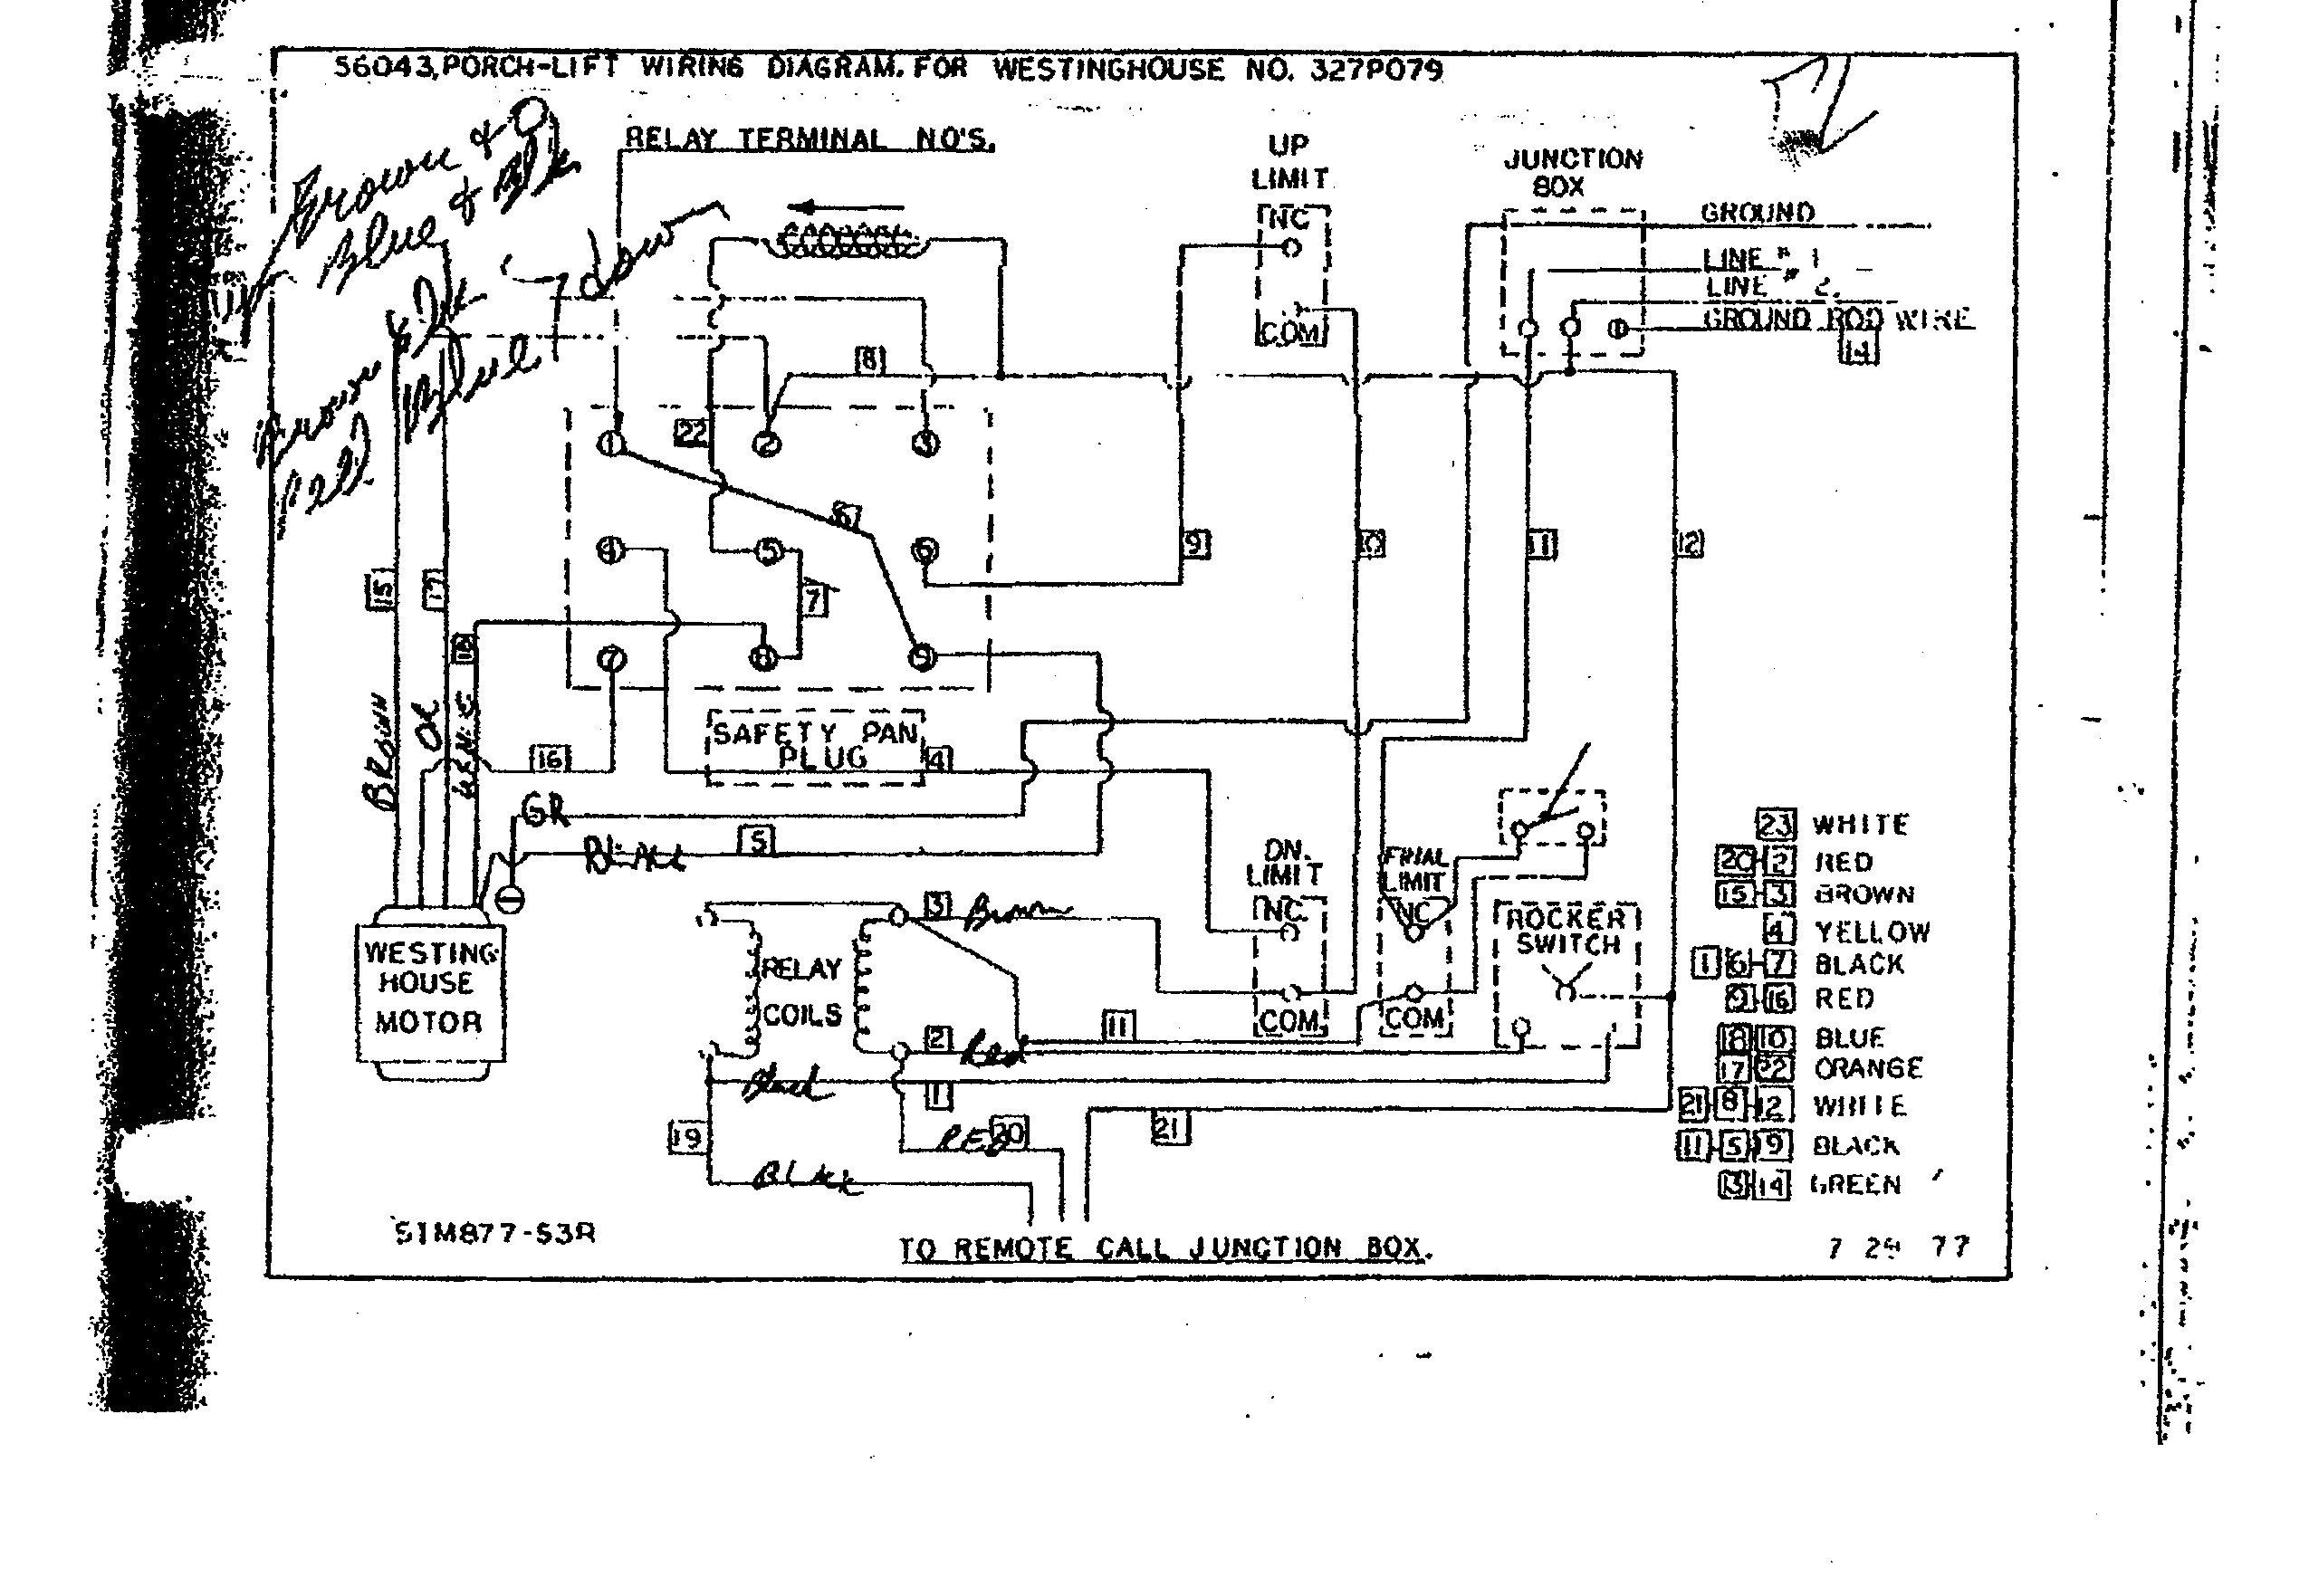 Who Where Can I Get Help With Westinghouse Motor Wiring Single Phase 220 Diagram Porch Lift Elevator